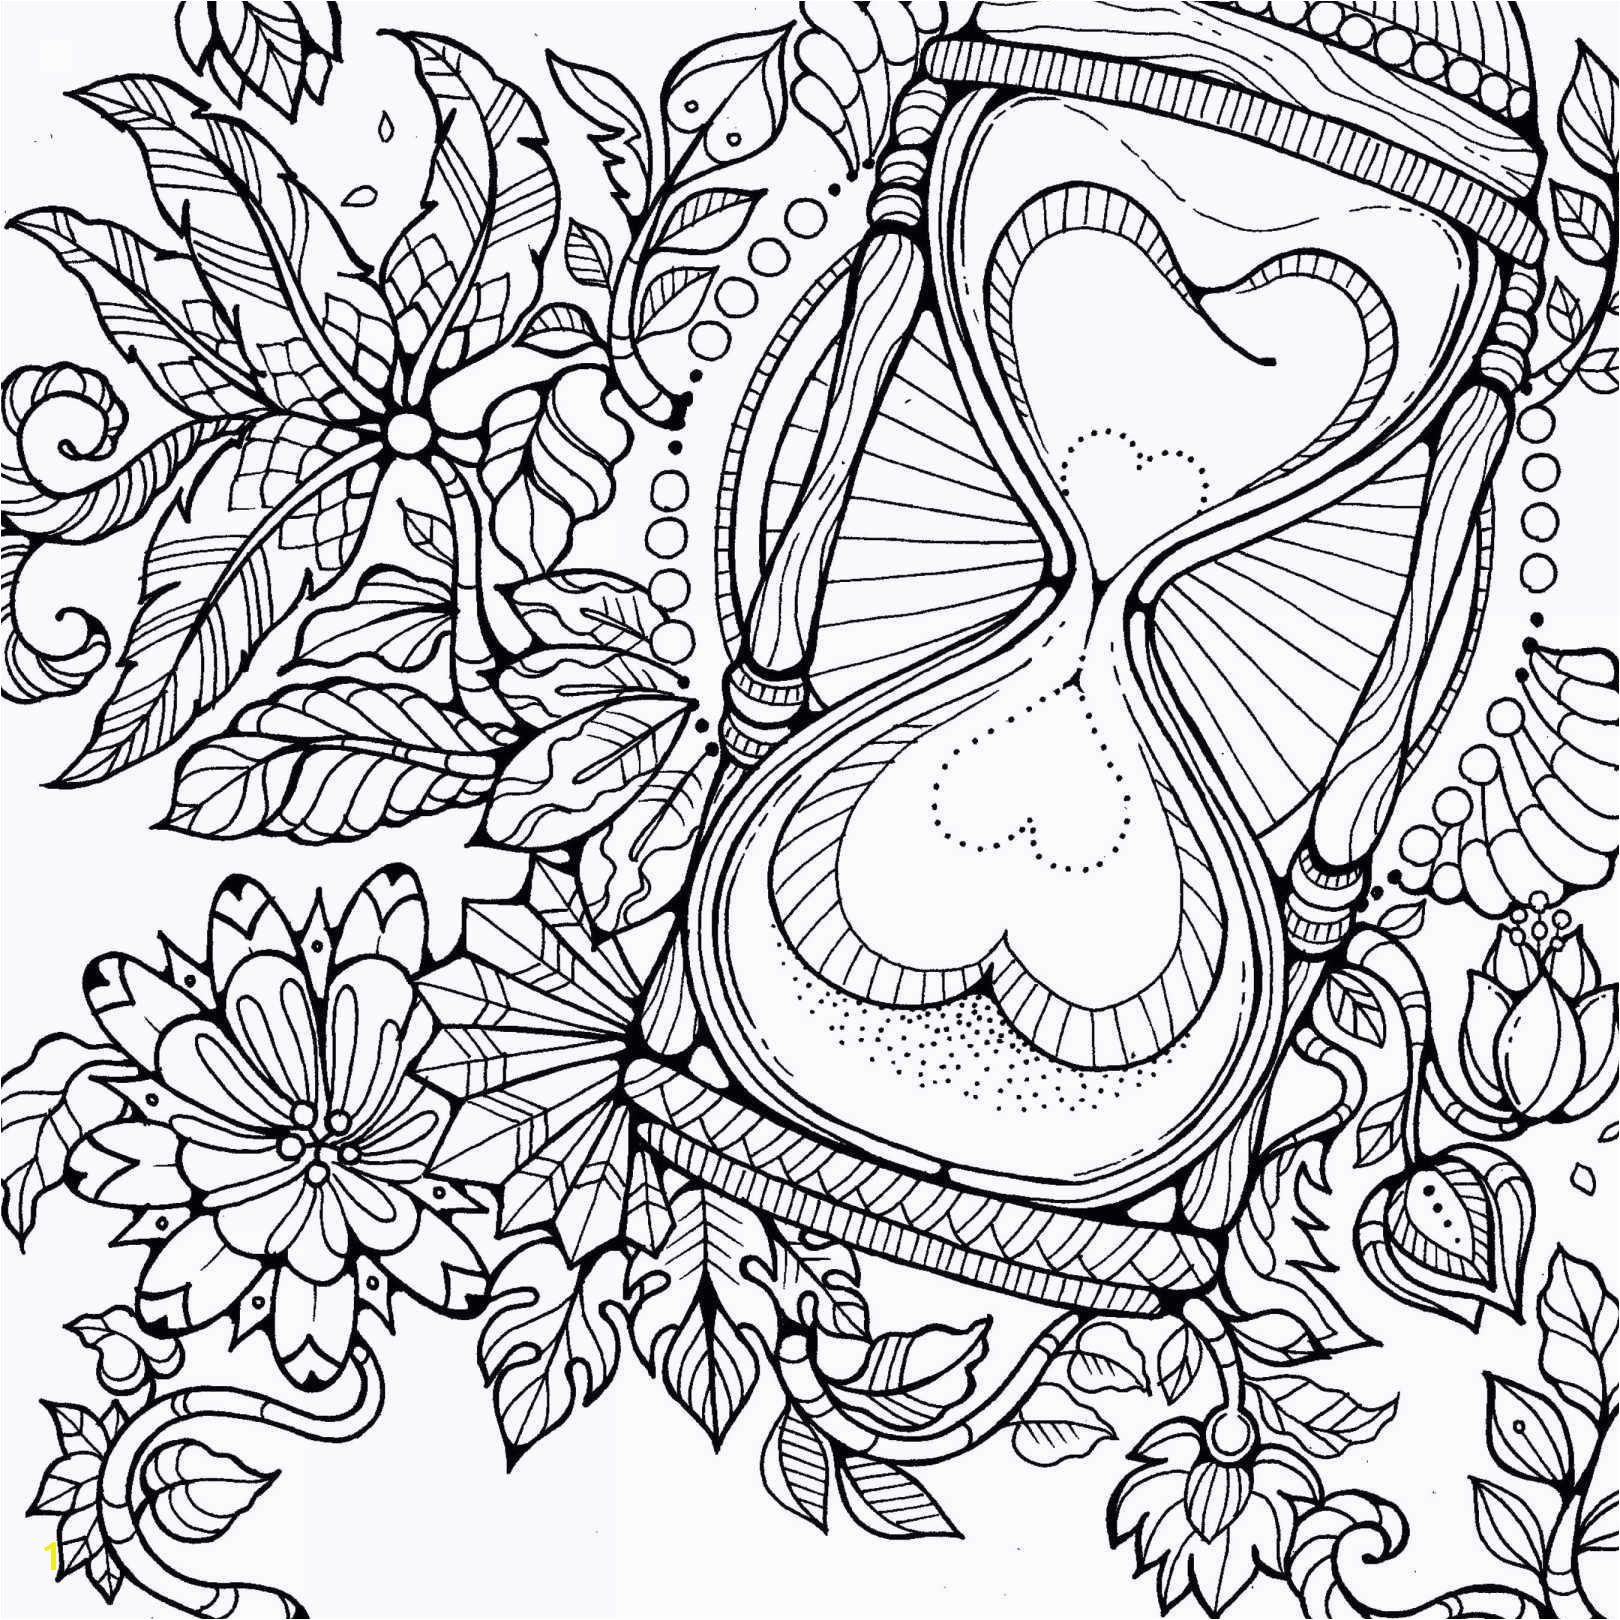 Coloring Pages Printable Inspirational Pages to Color New Color Page Luxury Multiplication Printables 0d Christmas Tree